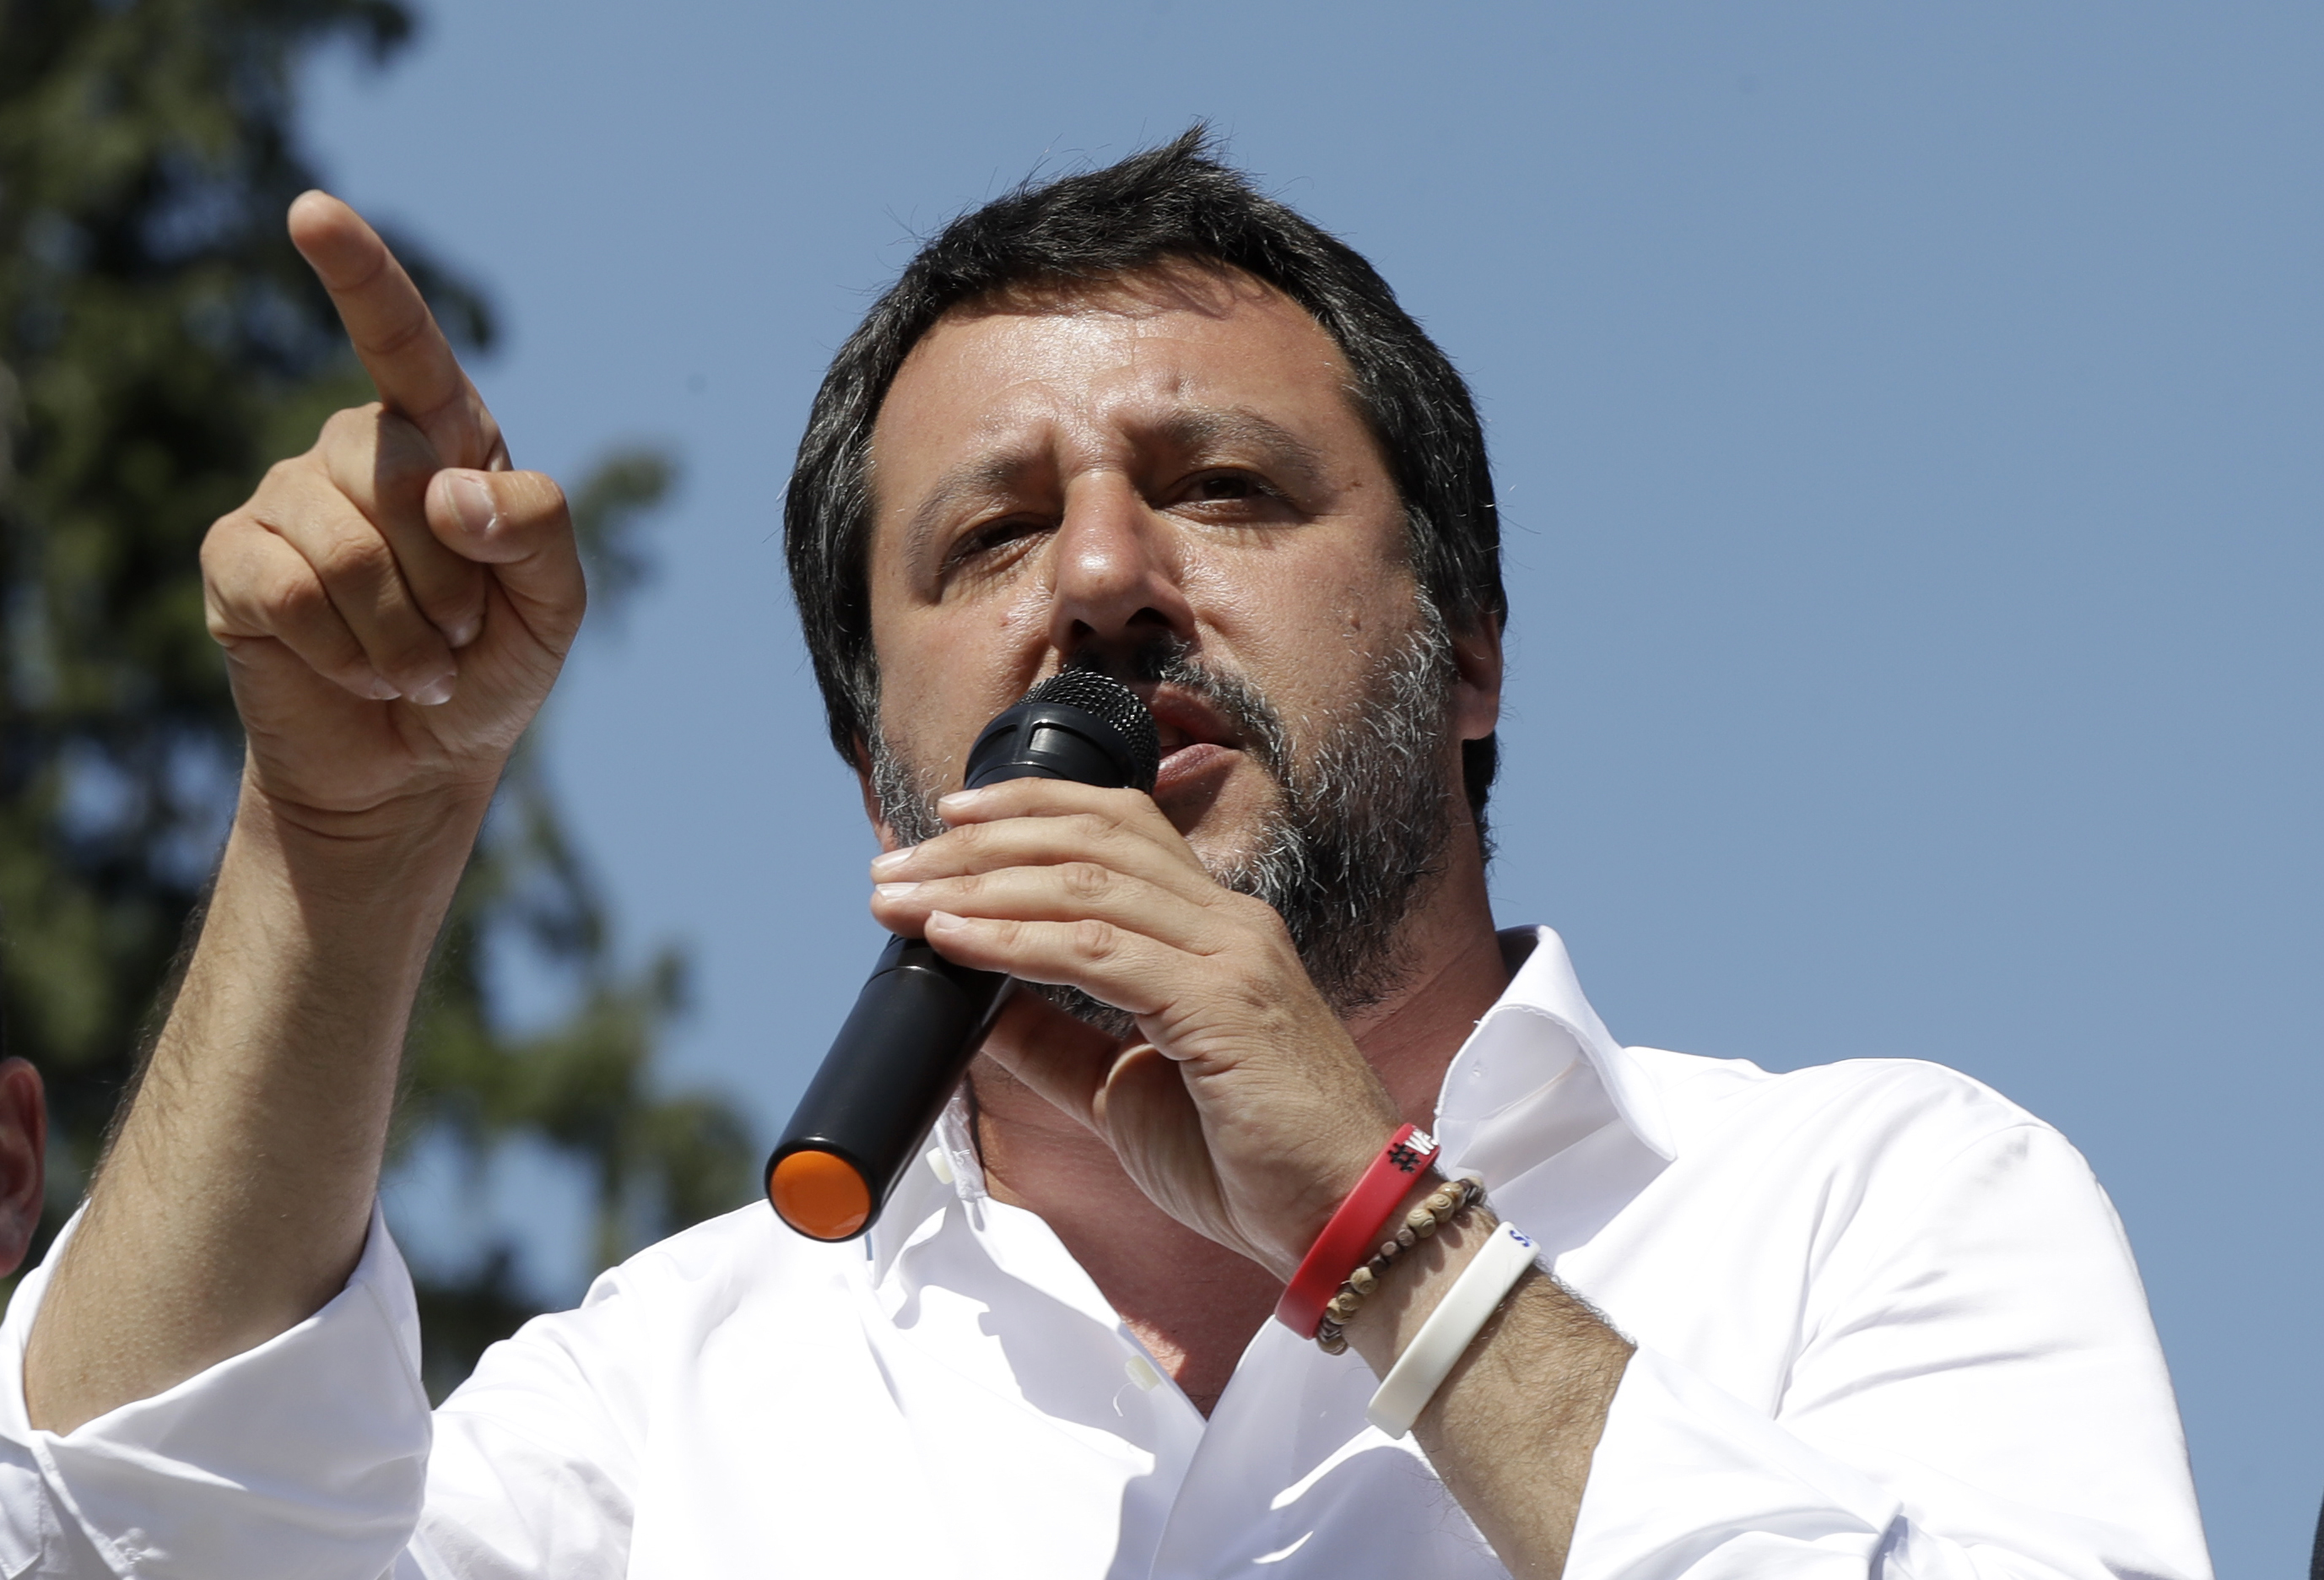 Italian interior Minister Matteo Salvini attends a public speaking in Giussano, near Milan, Italy, May 7, 2019,